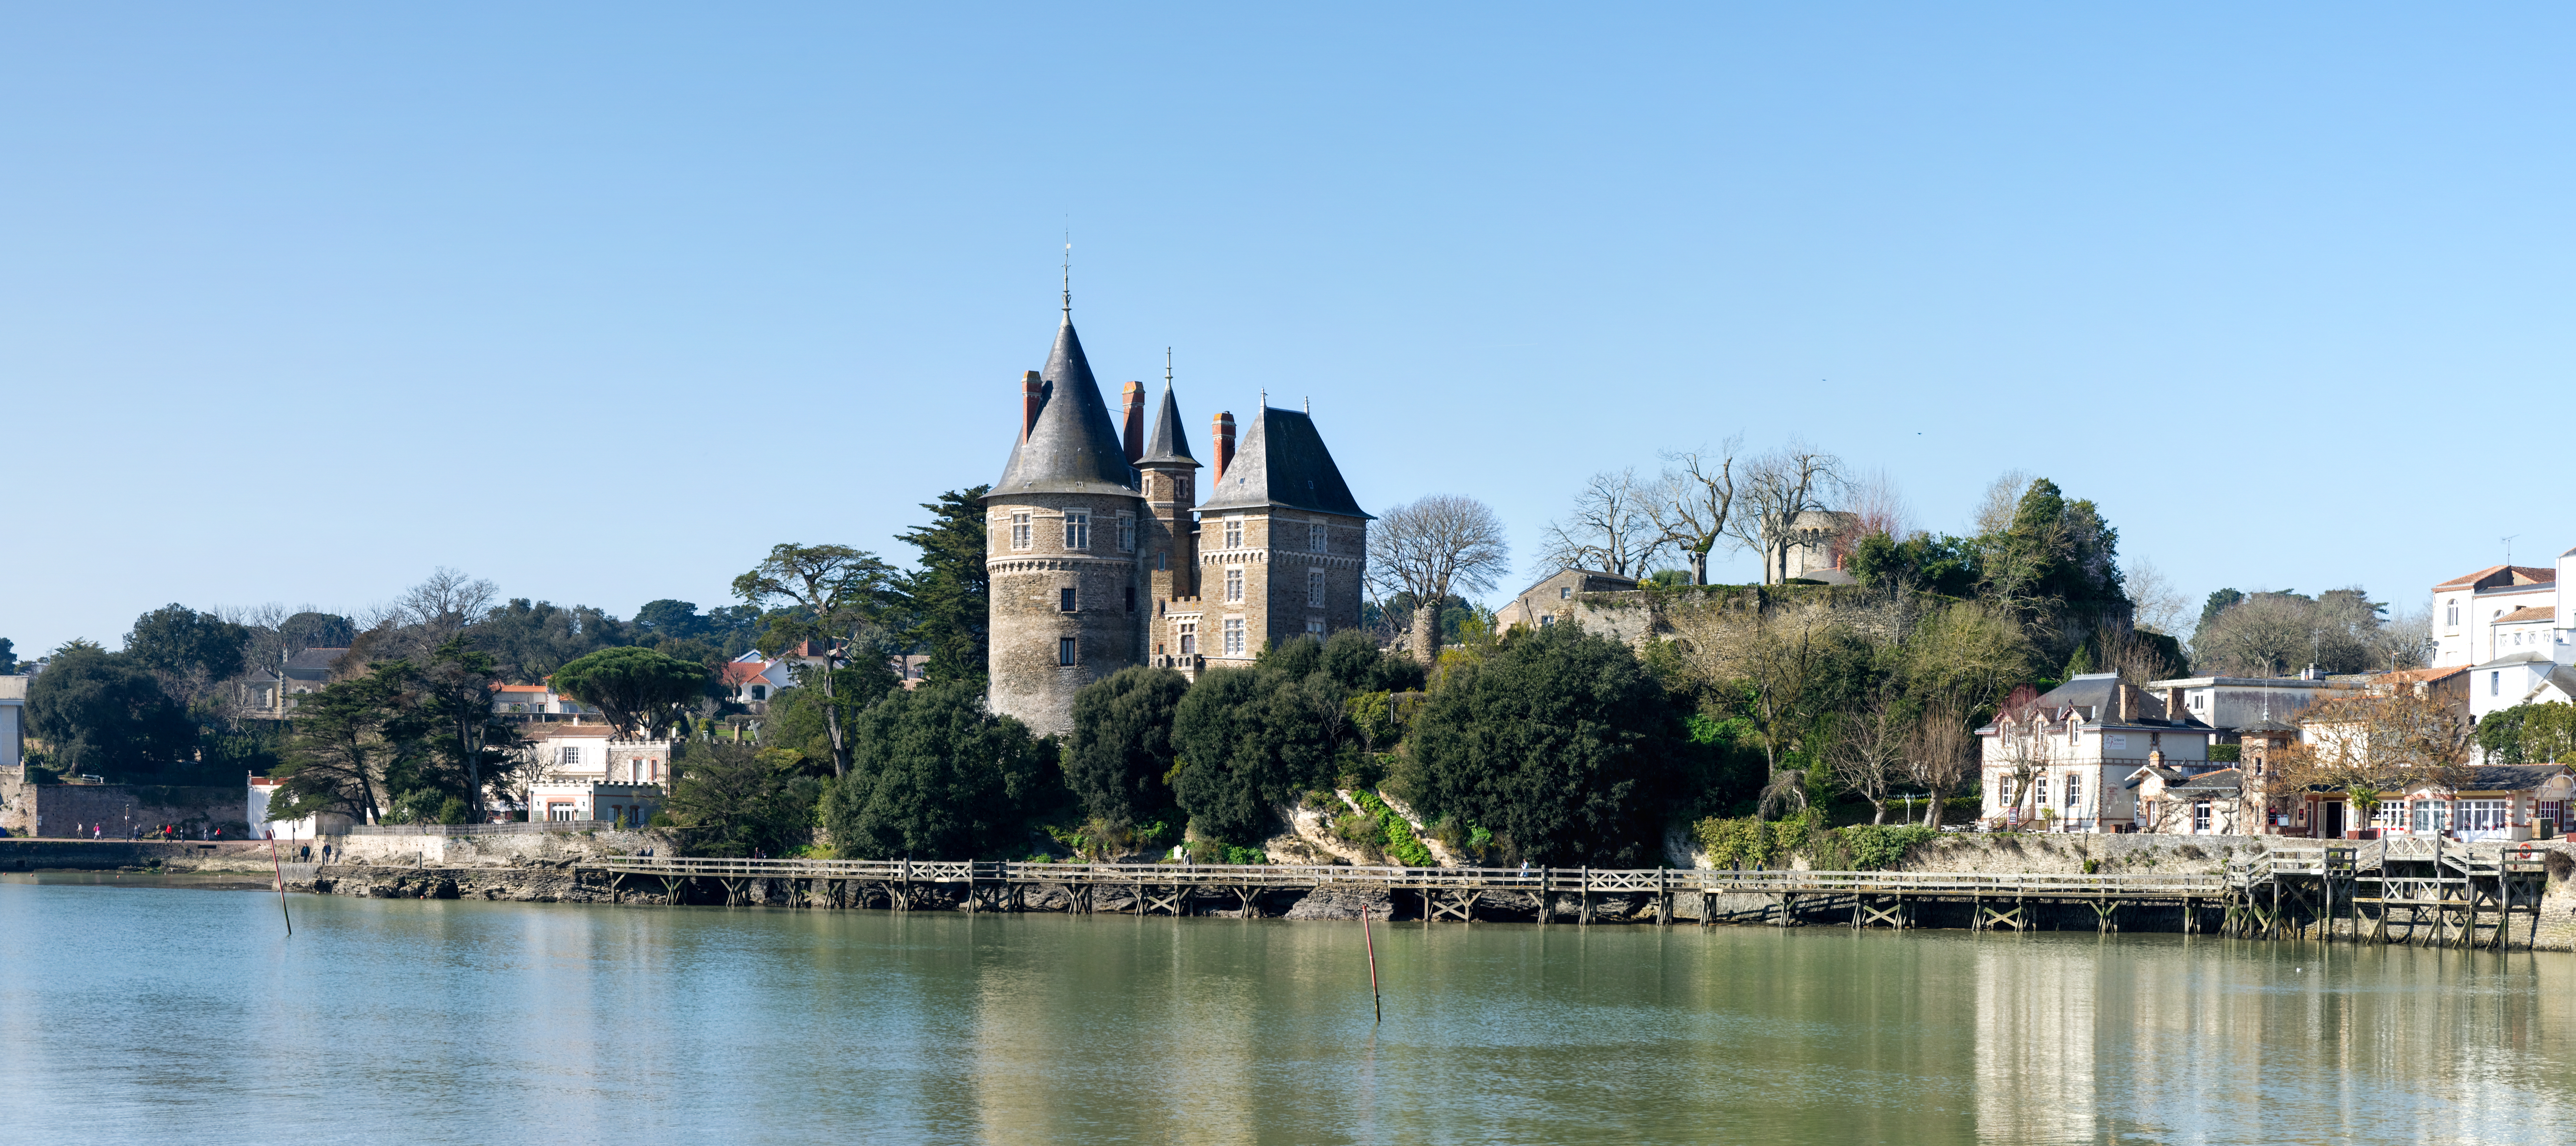 I, the copyright holder of this work, hereby publish it under the following license: English French Le château de Pornic